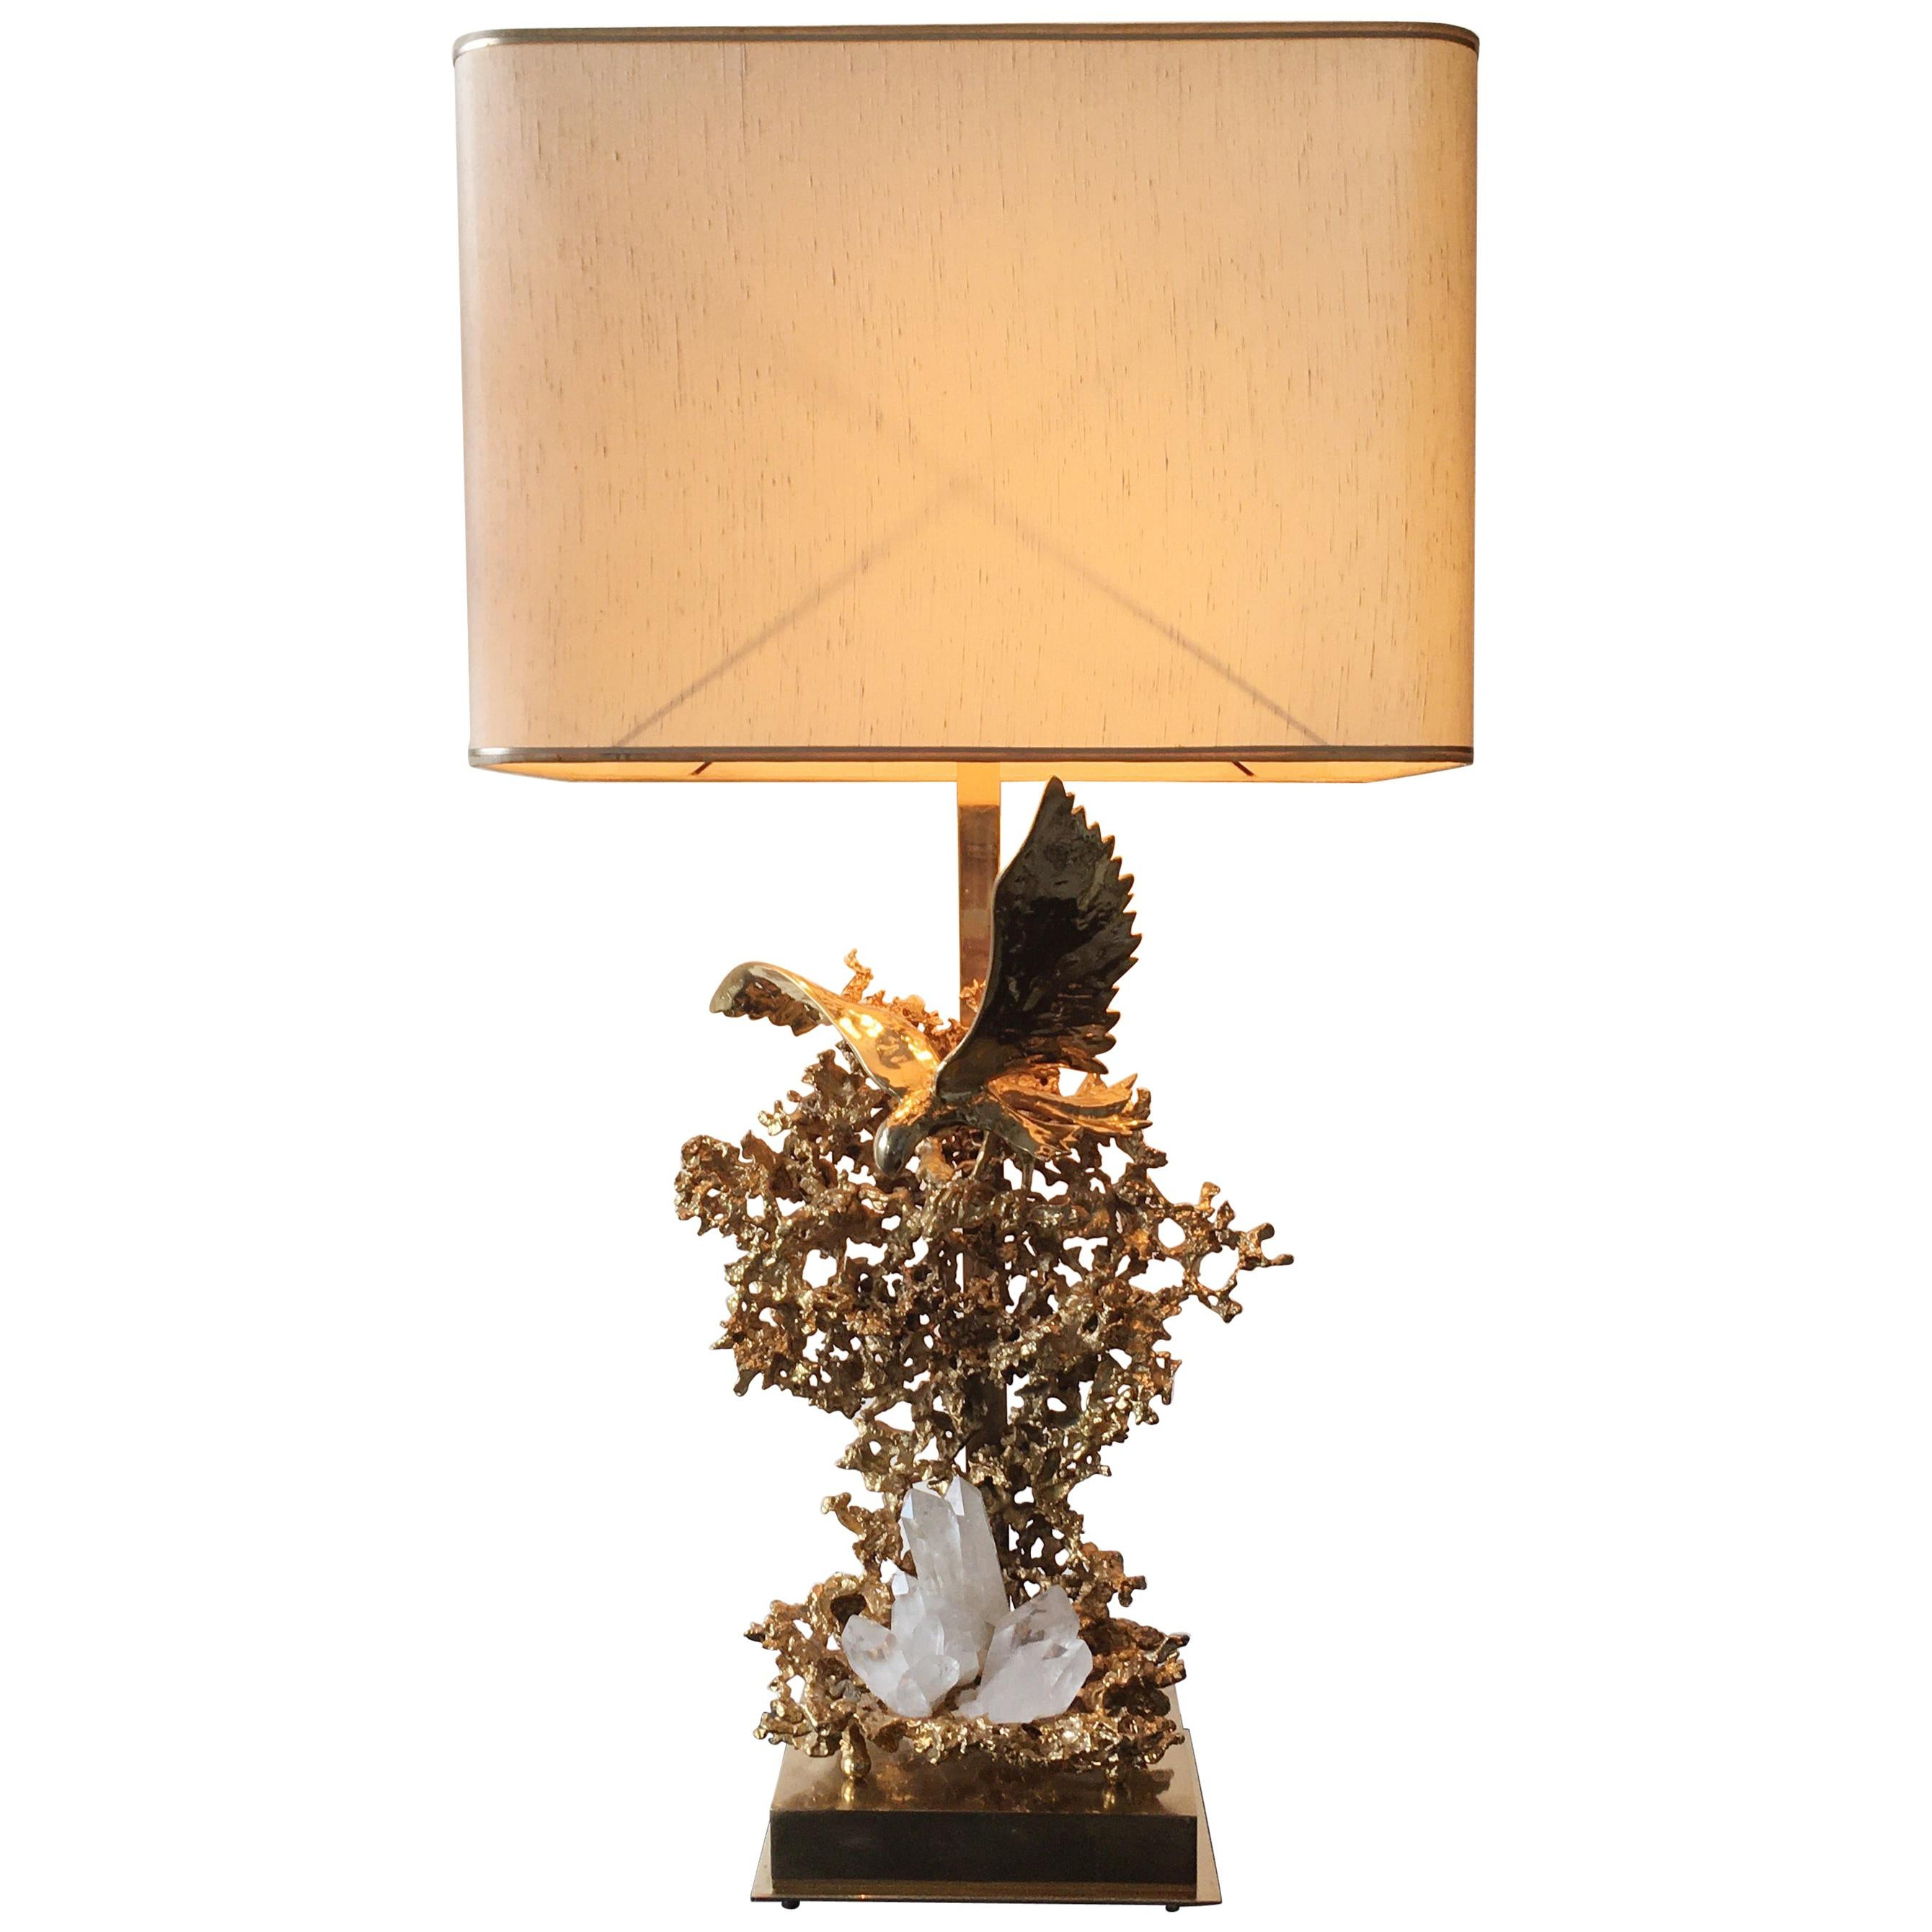 Claude Victor Boeltz 24-Karat Gold Plated 'Exploded' Table Lamp